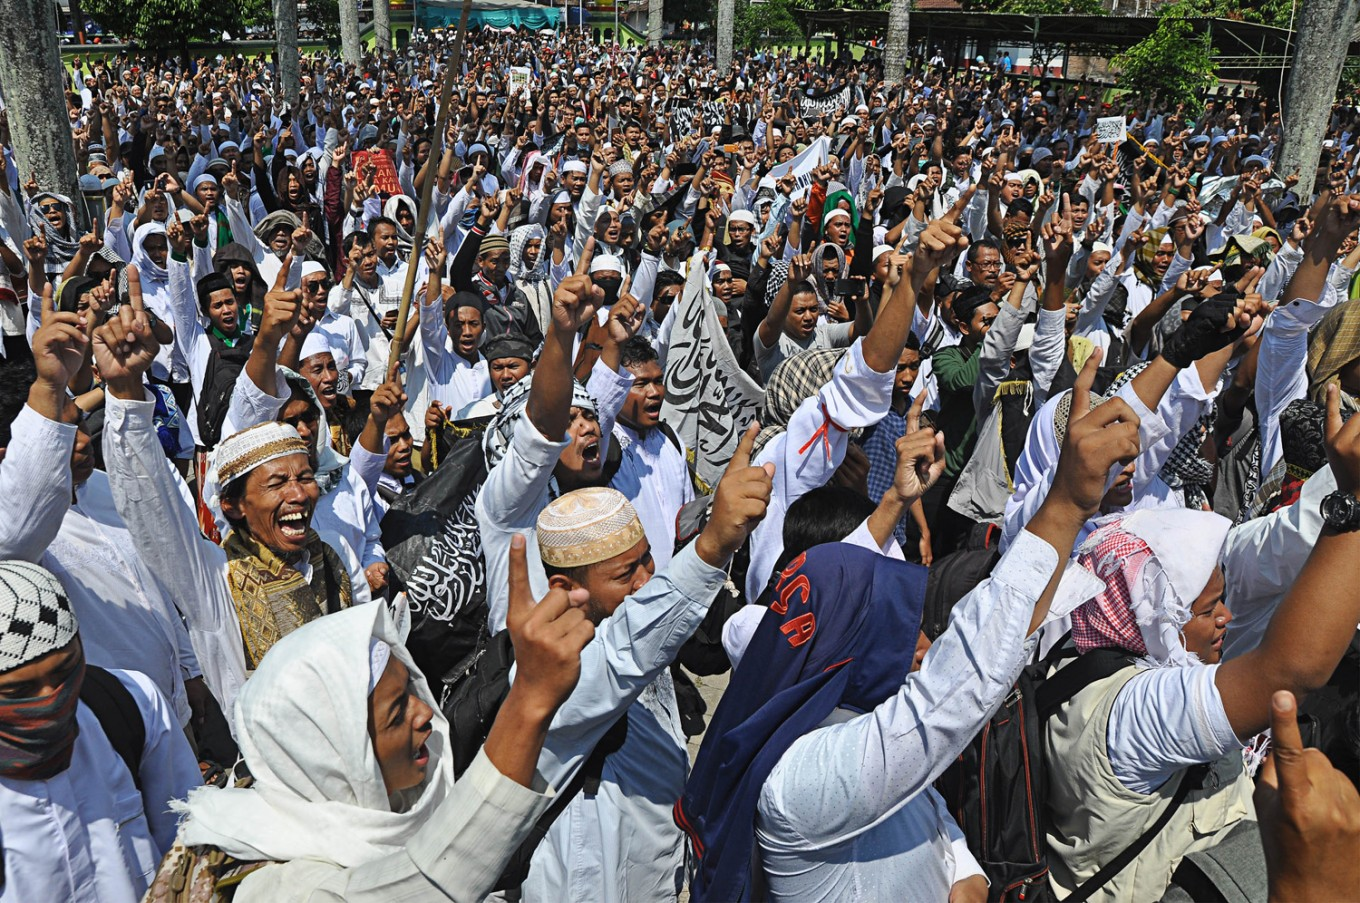 Peaceful Rohingya solidarity rally held near Borobudur Temple